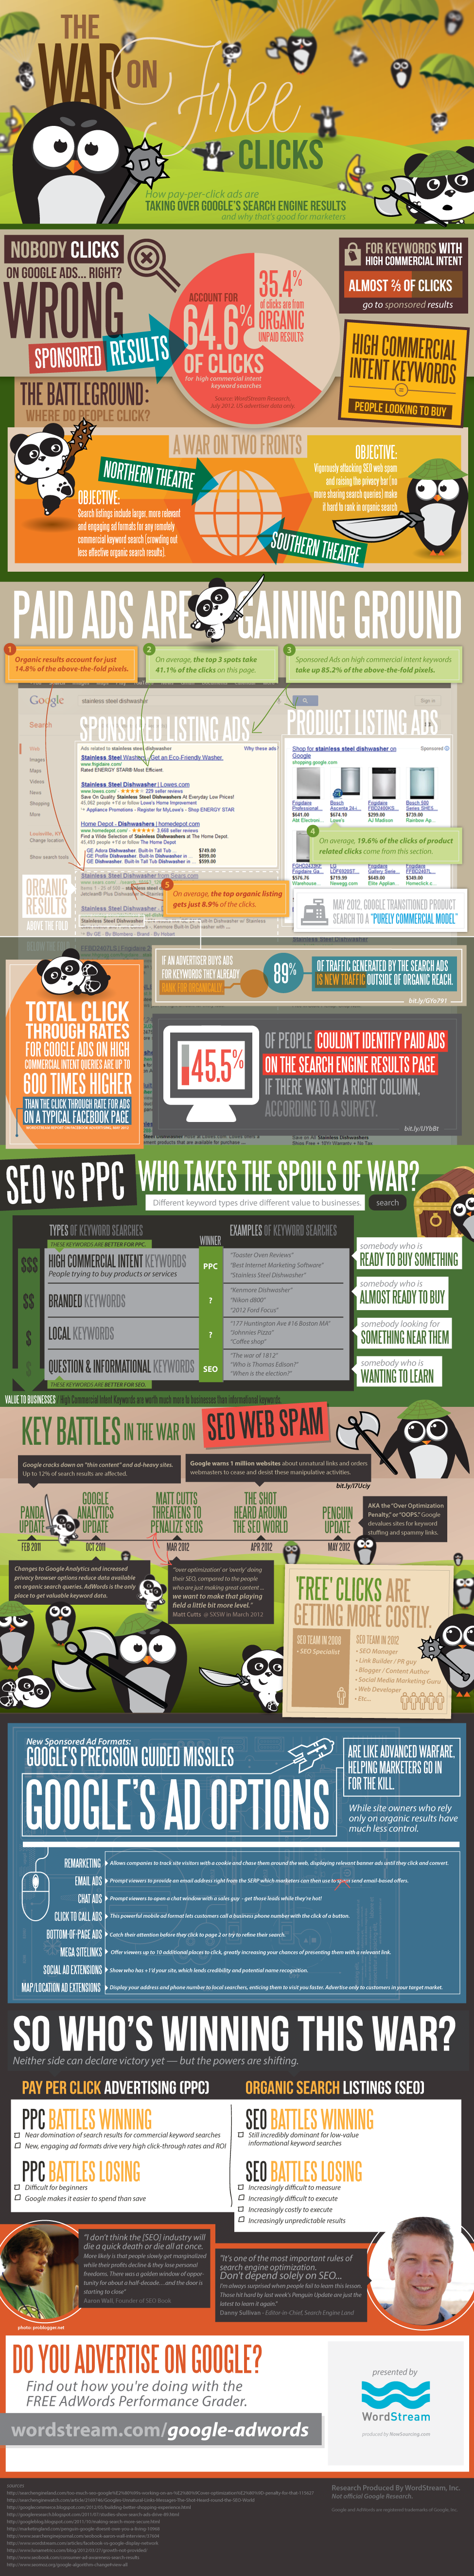 The War on Free Clicks - How Sponsored Search Listings are Taking Over the Search Results Page